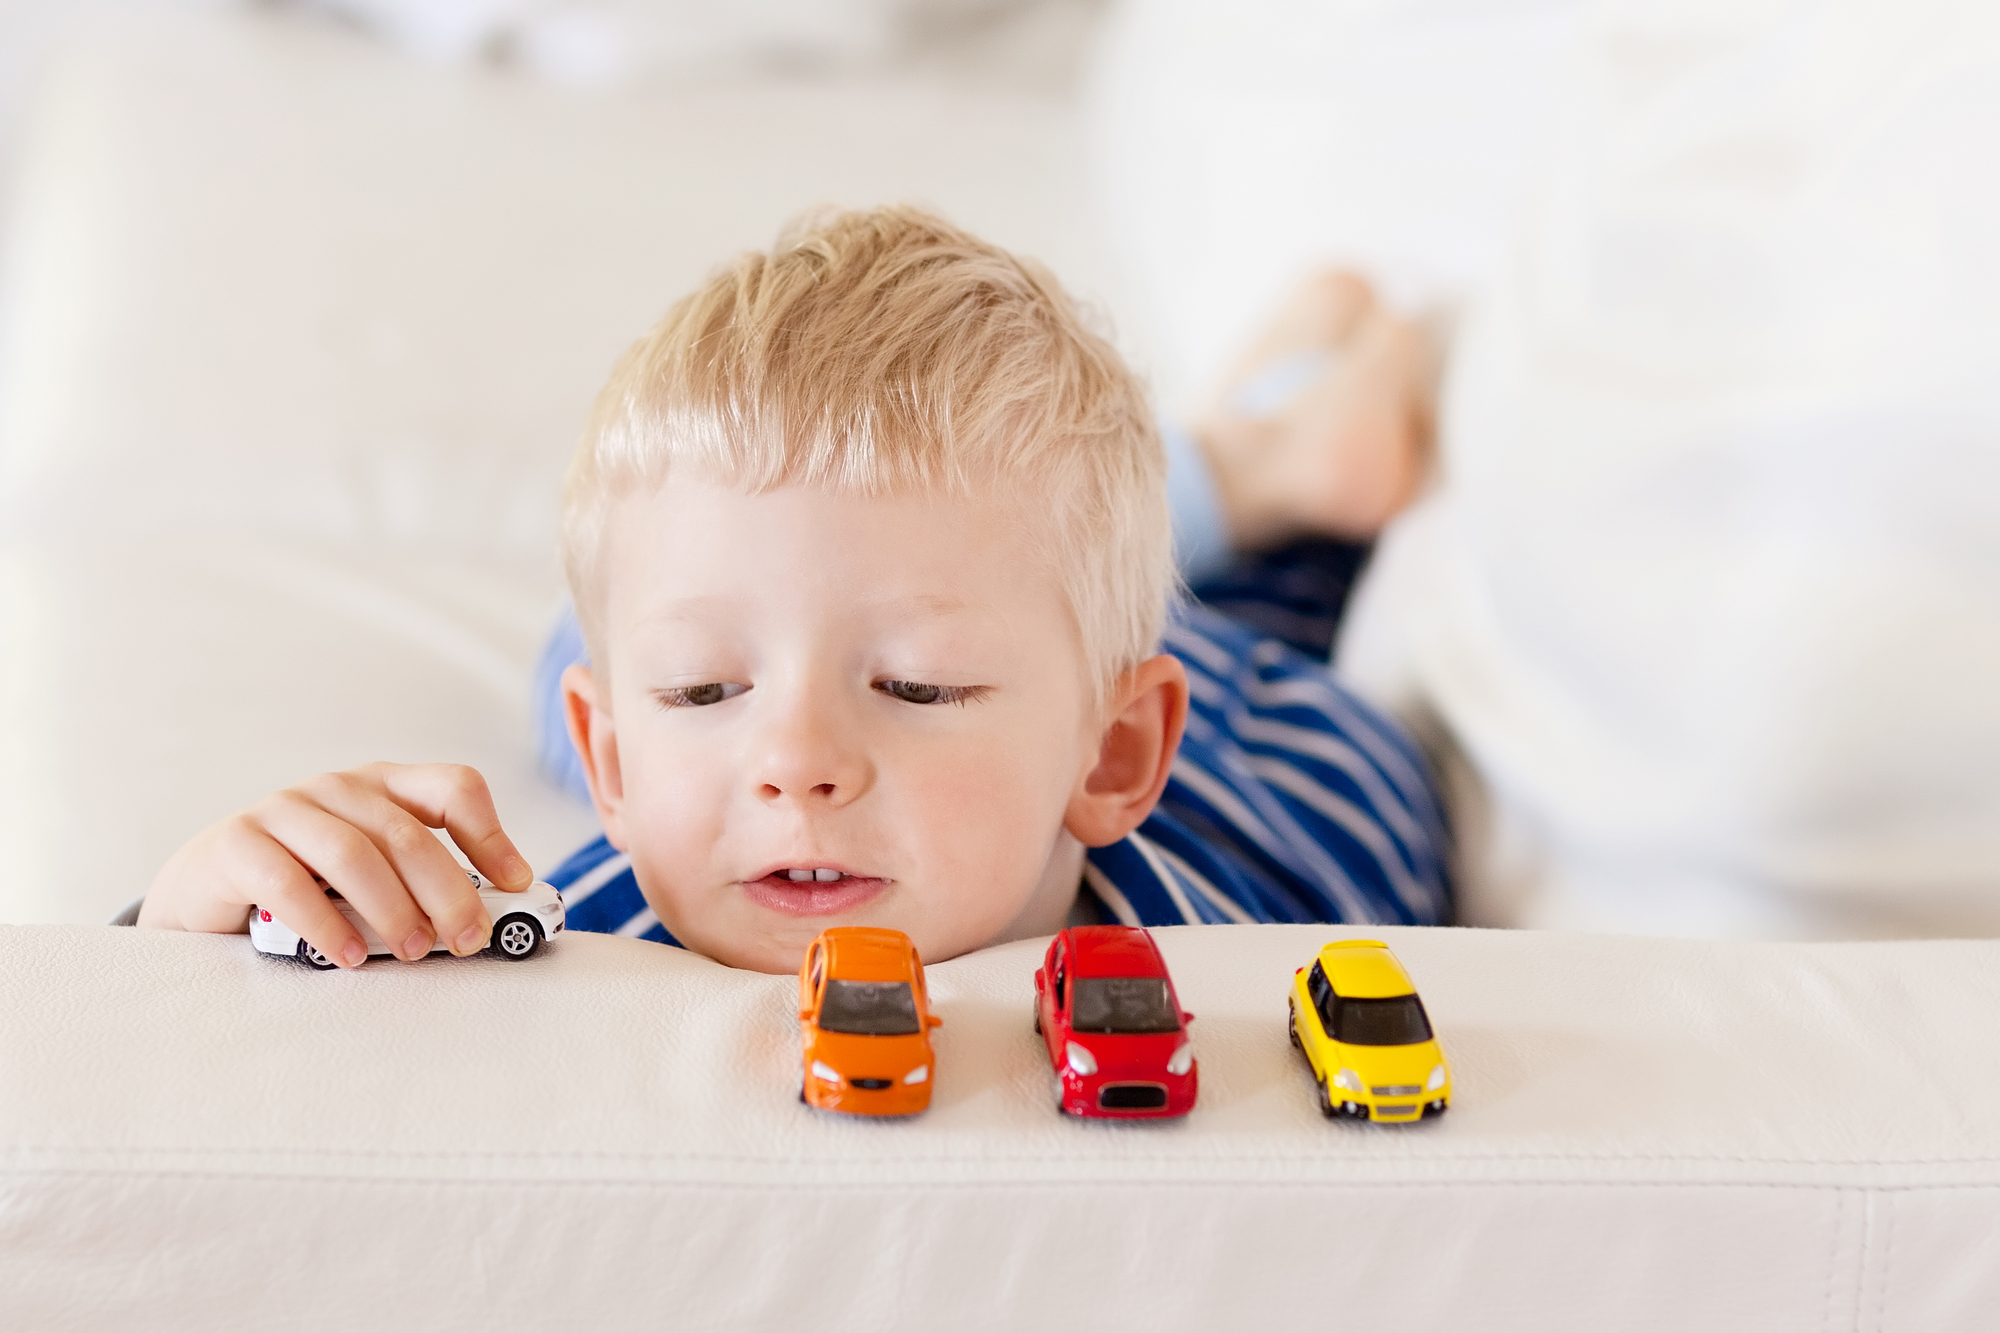 young caucasian boy plays with colorful toy cars